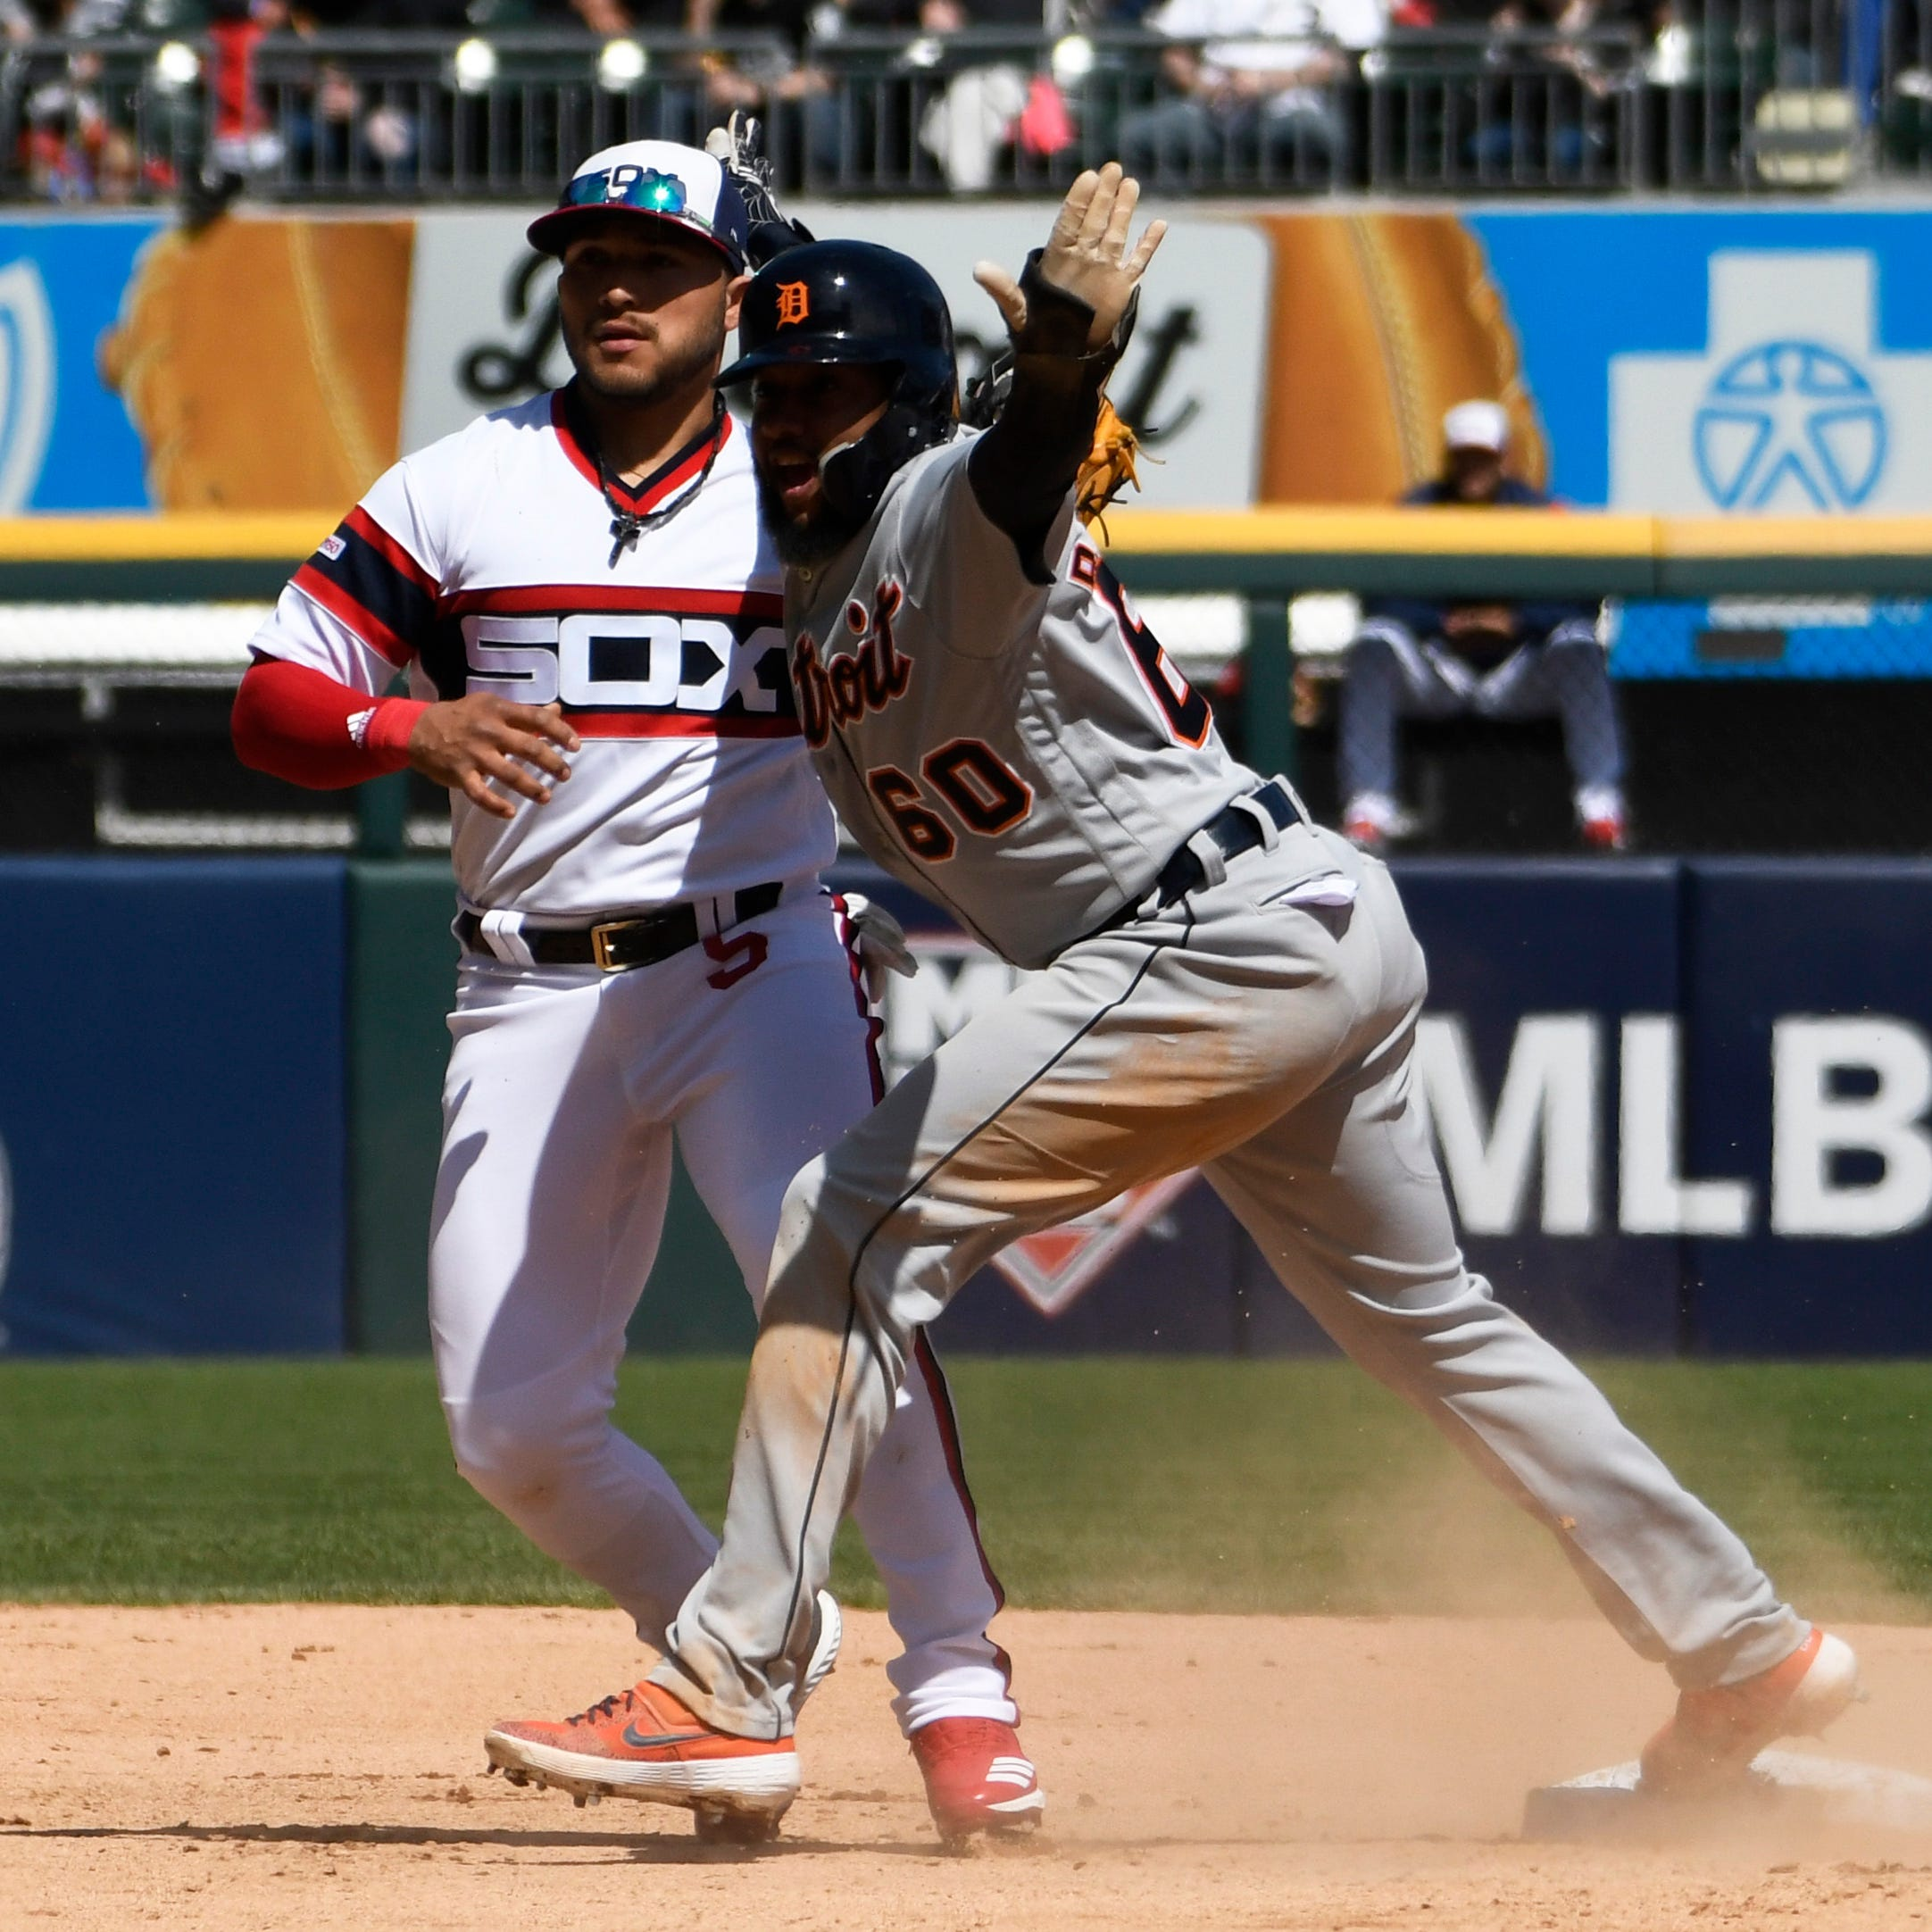 Fan club: Tigers strike out 20 times in record-setting loss to White Sox